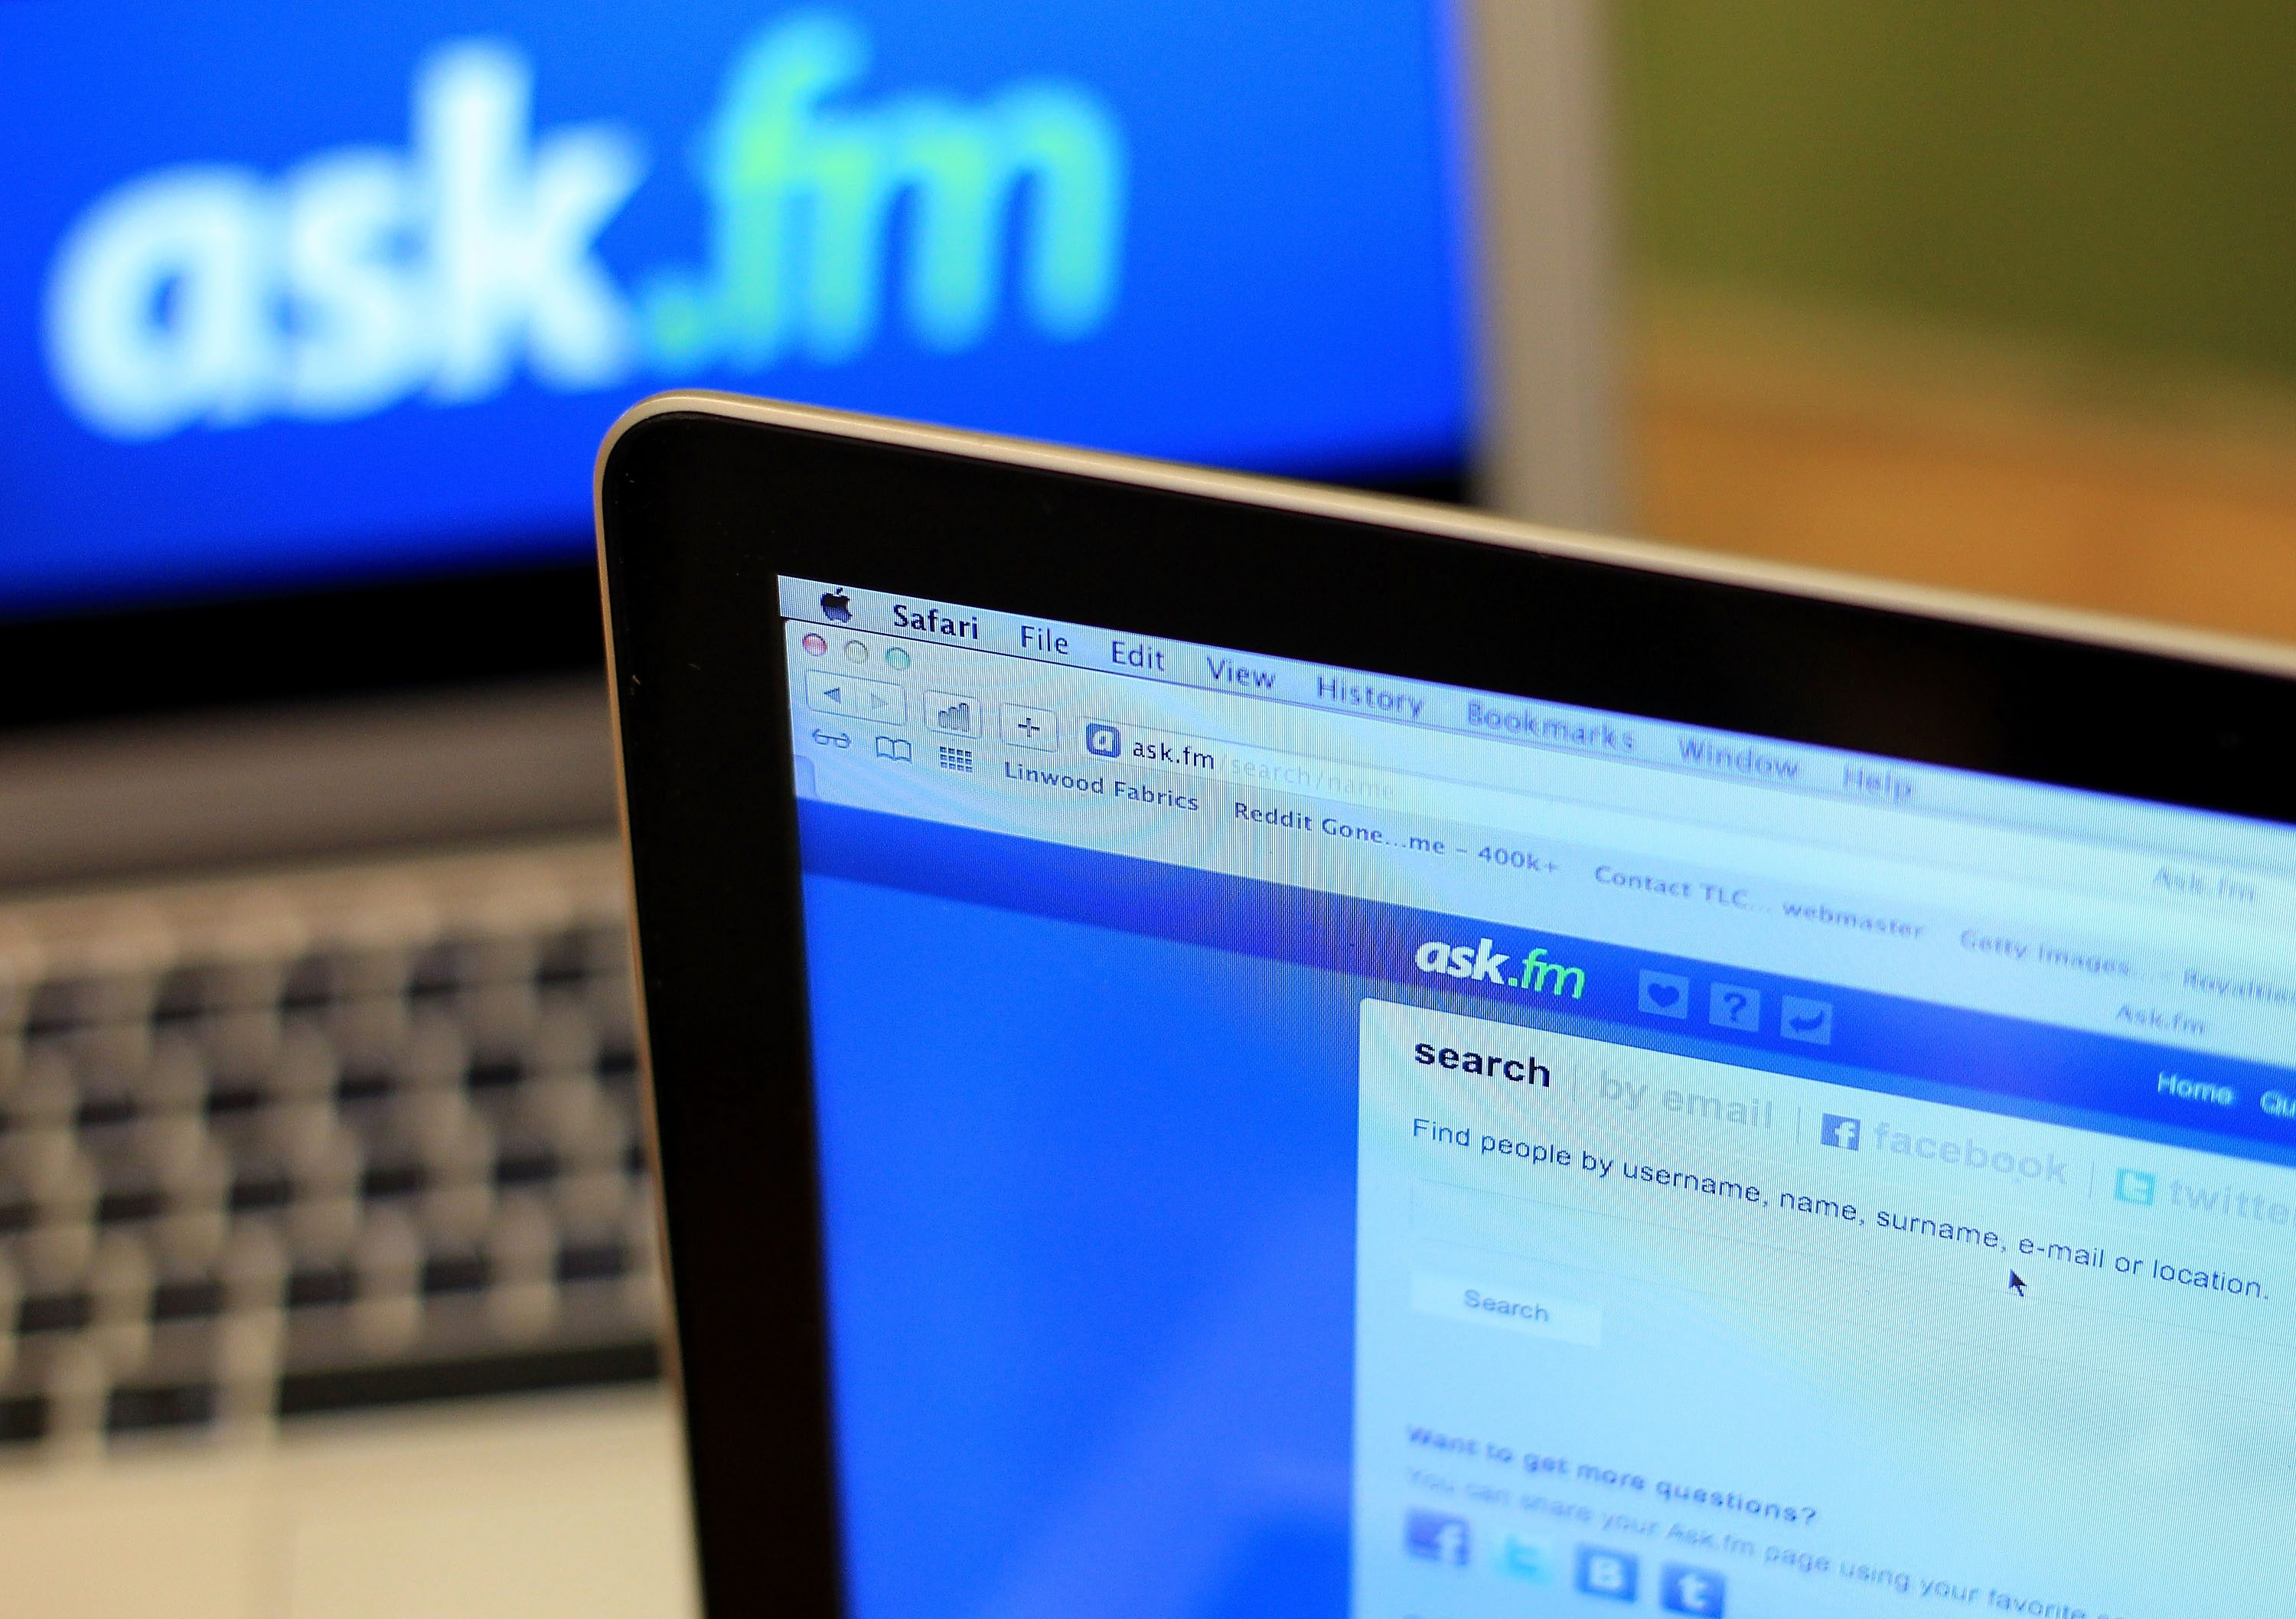 Relatively new websites like Ask.FM have been linked to bullying cases.